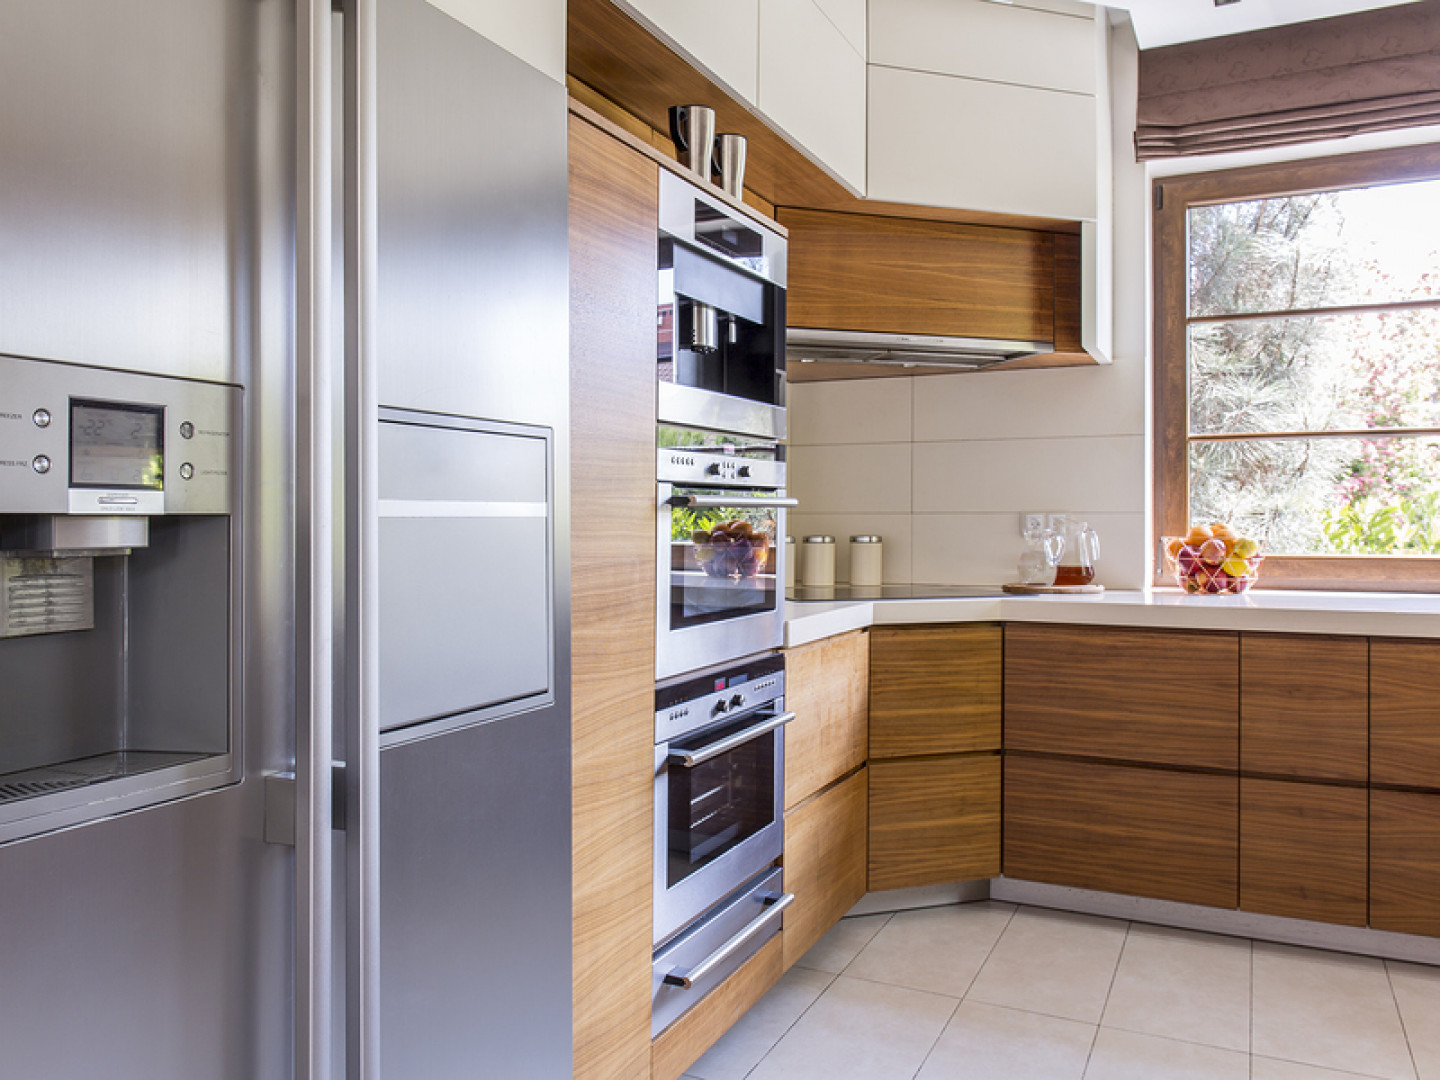 A stainless steel refrigerator with french doors and water and ice dispenser